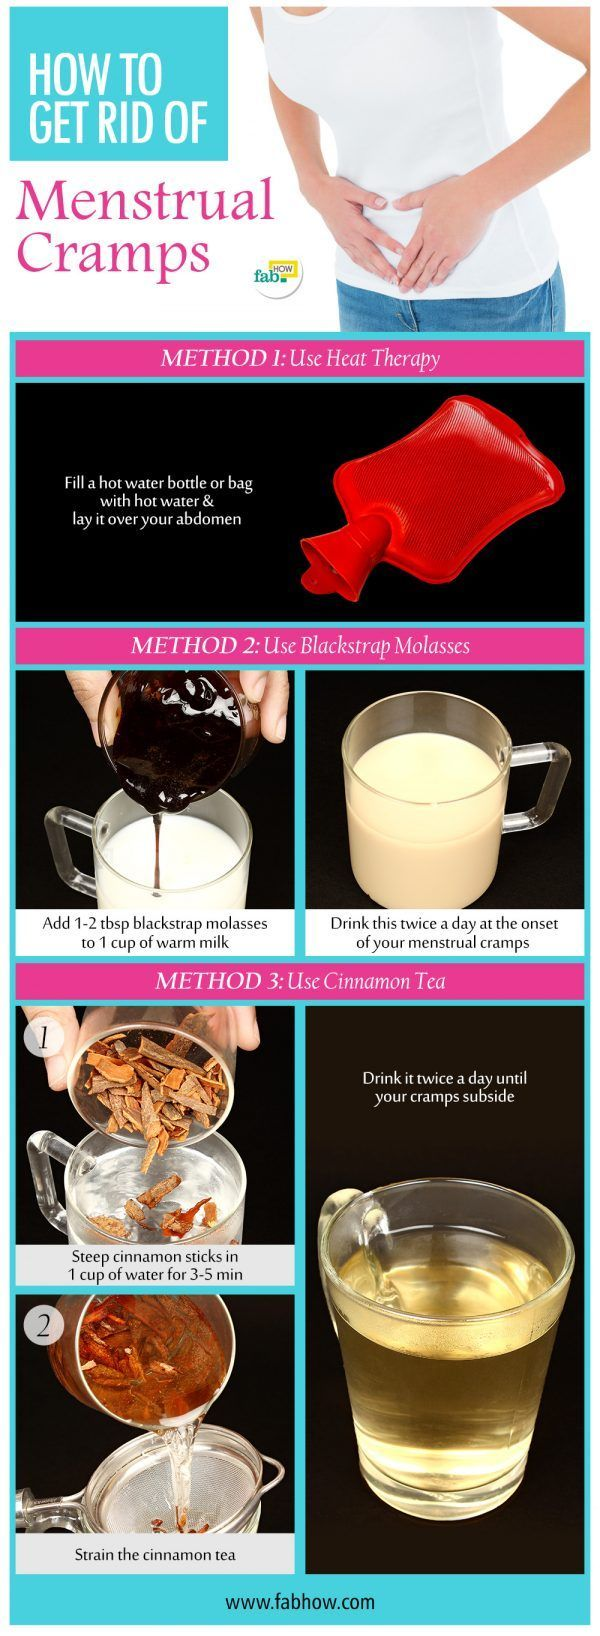 Home Remedies to Get Rid of Really Bad Menstrual Cramps Fast and Naturally